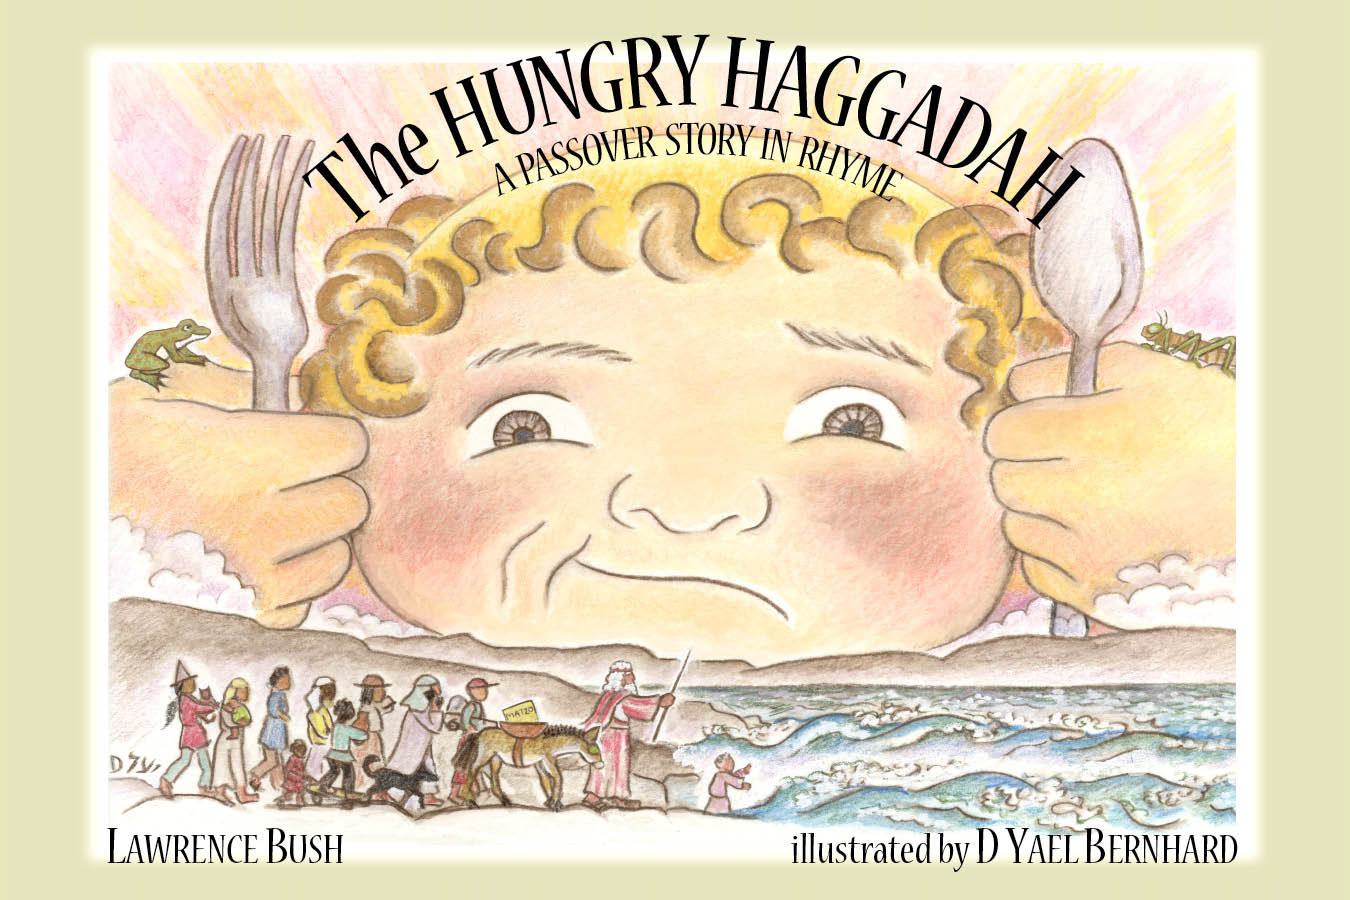 Hungry Haggadah cover color proof